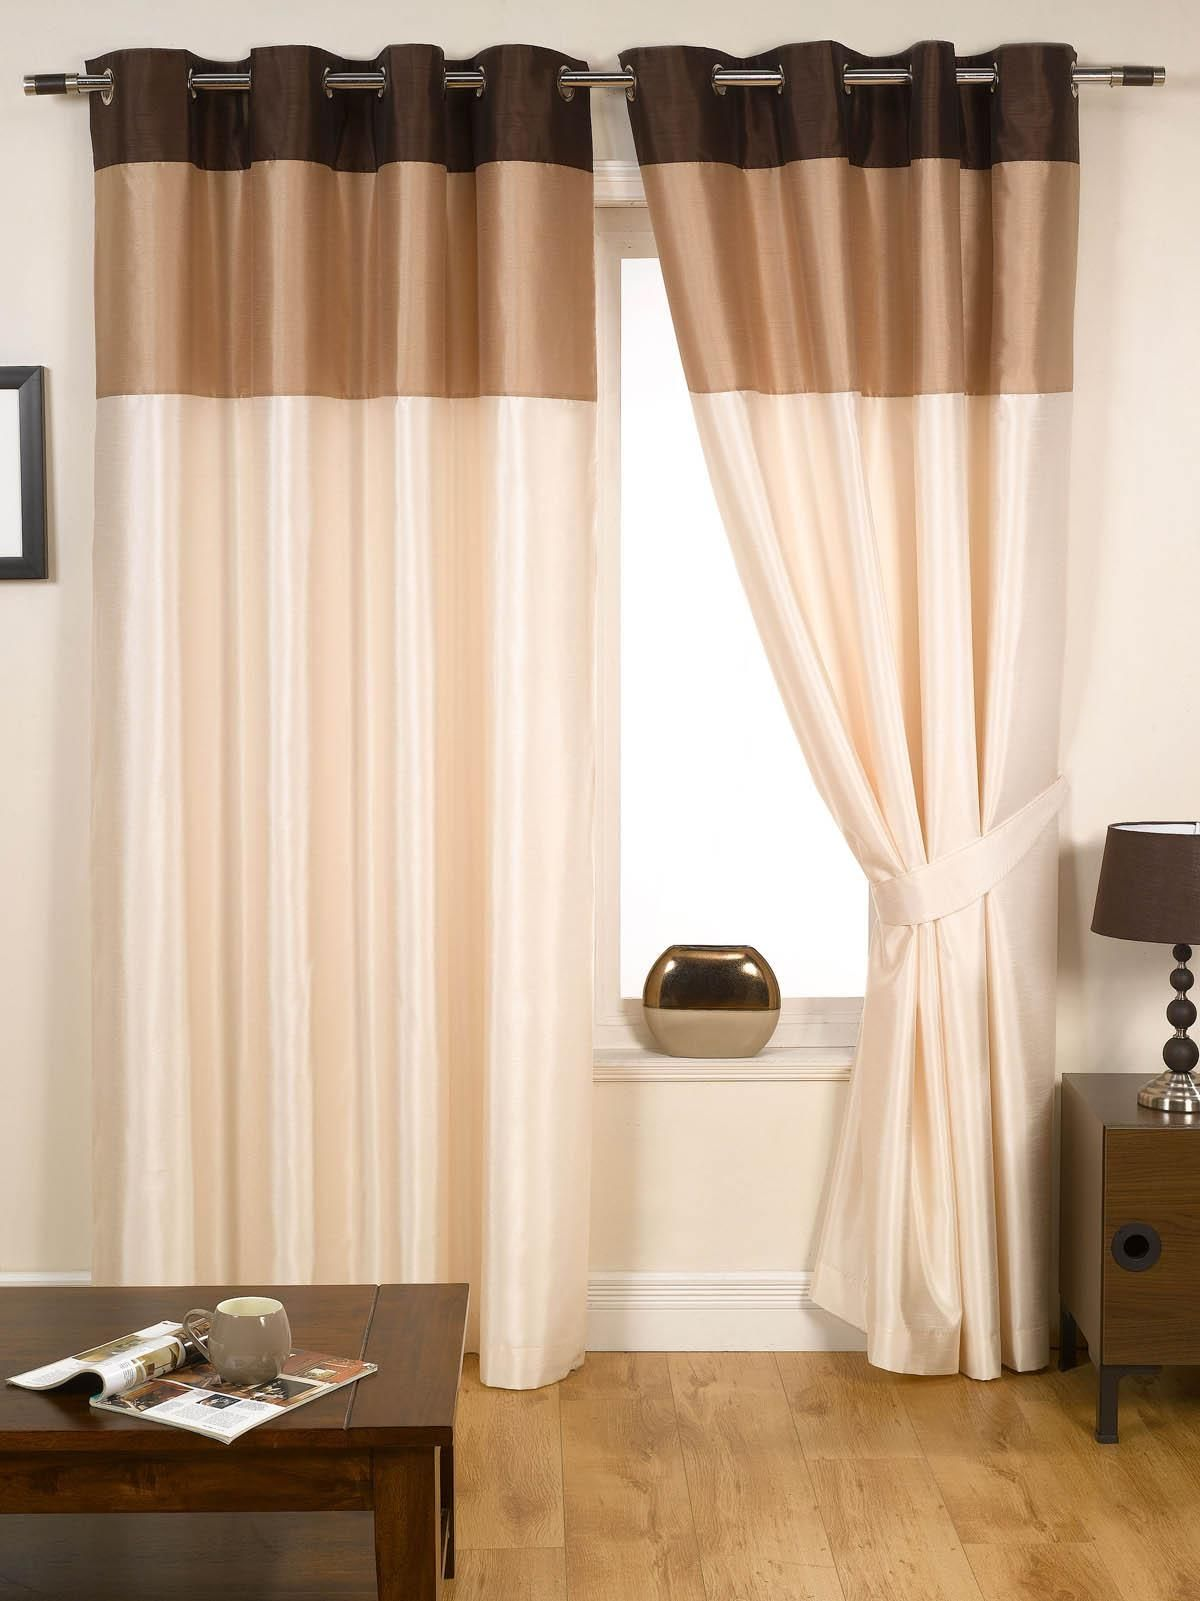 Gardinen Grau Rot Gestreift Copper And Black Striped Curtains Uk Google Search Home